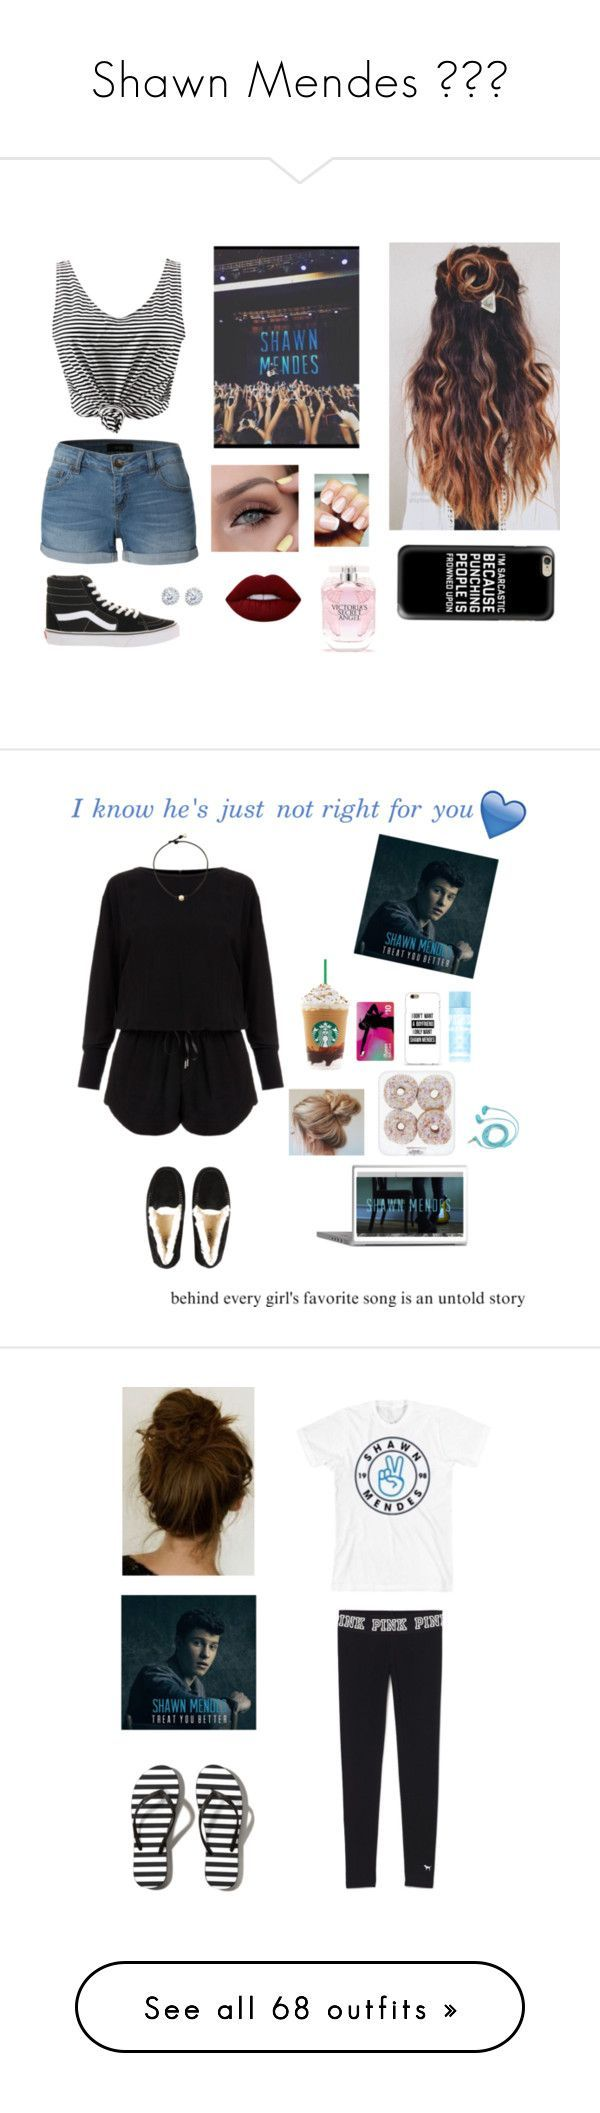 """""""Shawn Mendes ✌️"""" by jiejiebear ❤ liked on Polyvore featuring LE3NO, Vans, Casetify, Lime Crime, Victoria's Secret, Kobelli, tumblr, shawnmendes, Helmut Lang and UGG Australia"""